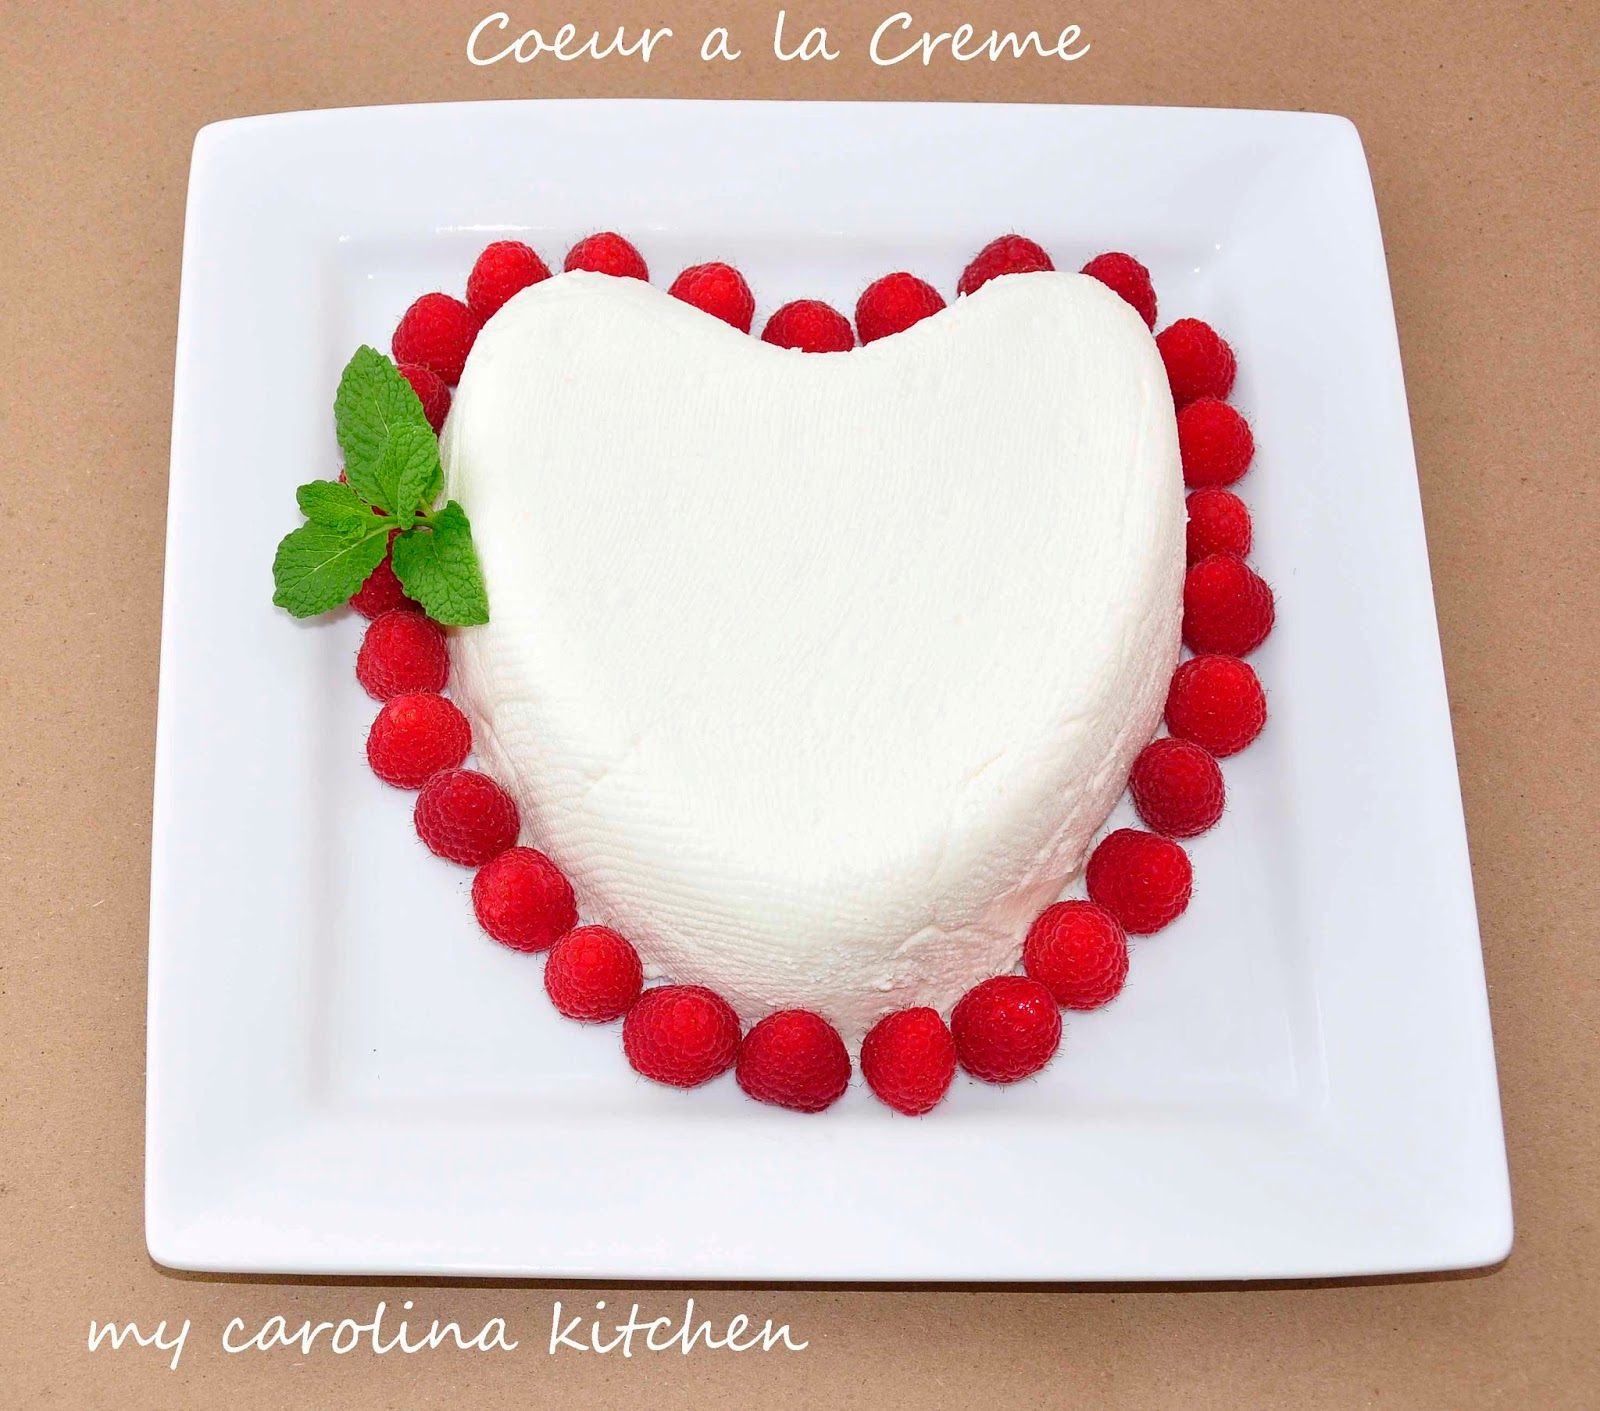 Day Coeur A La Creme With Raspberries Recipes — Dishmaps